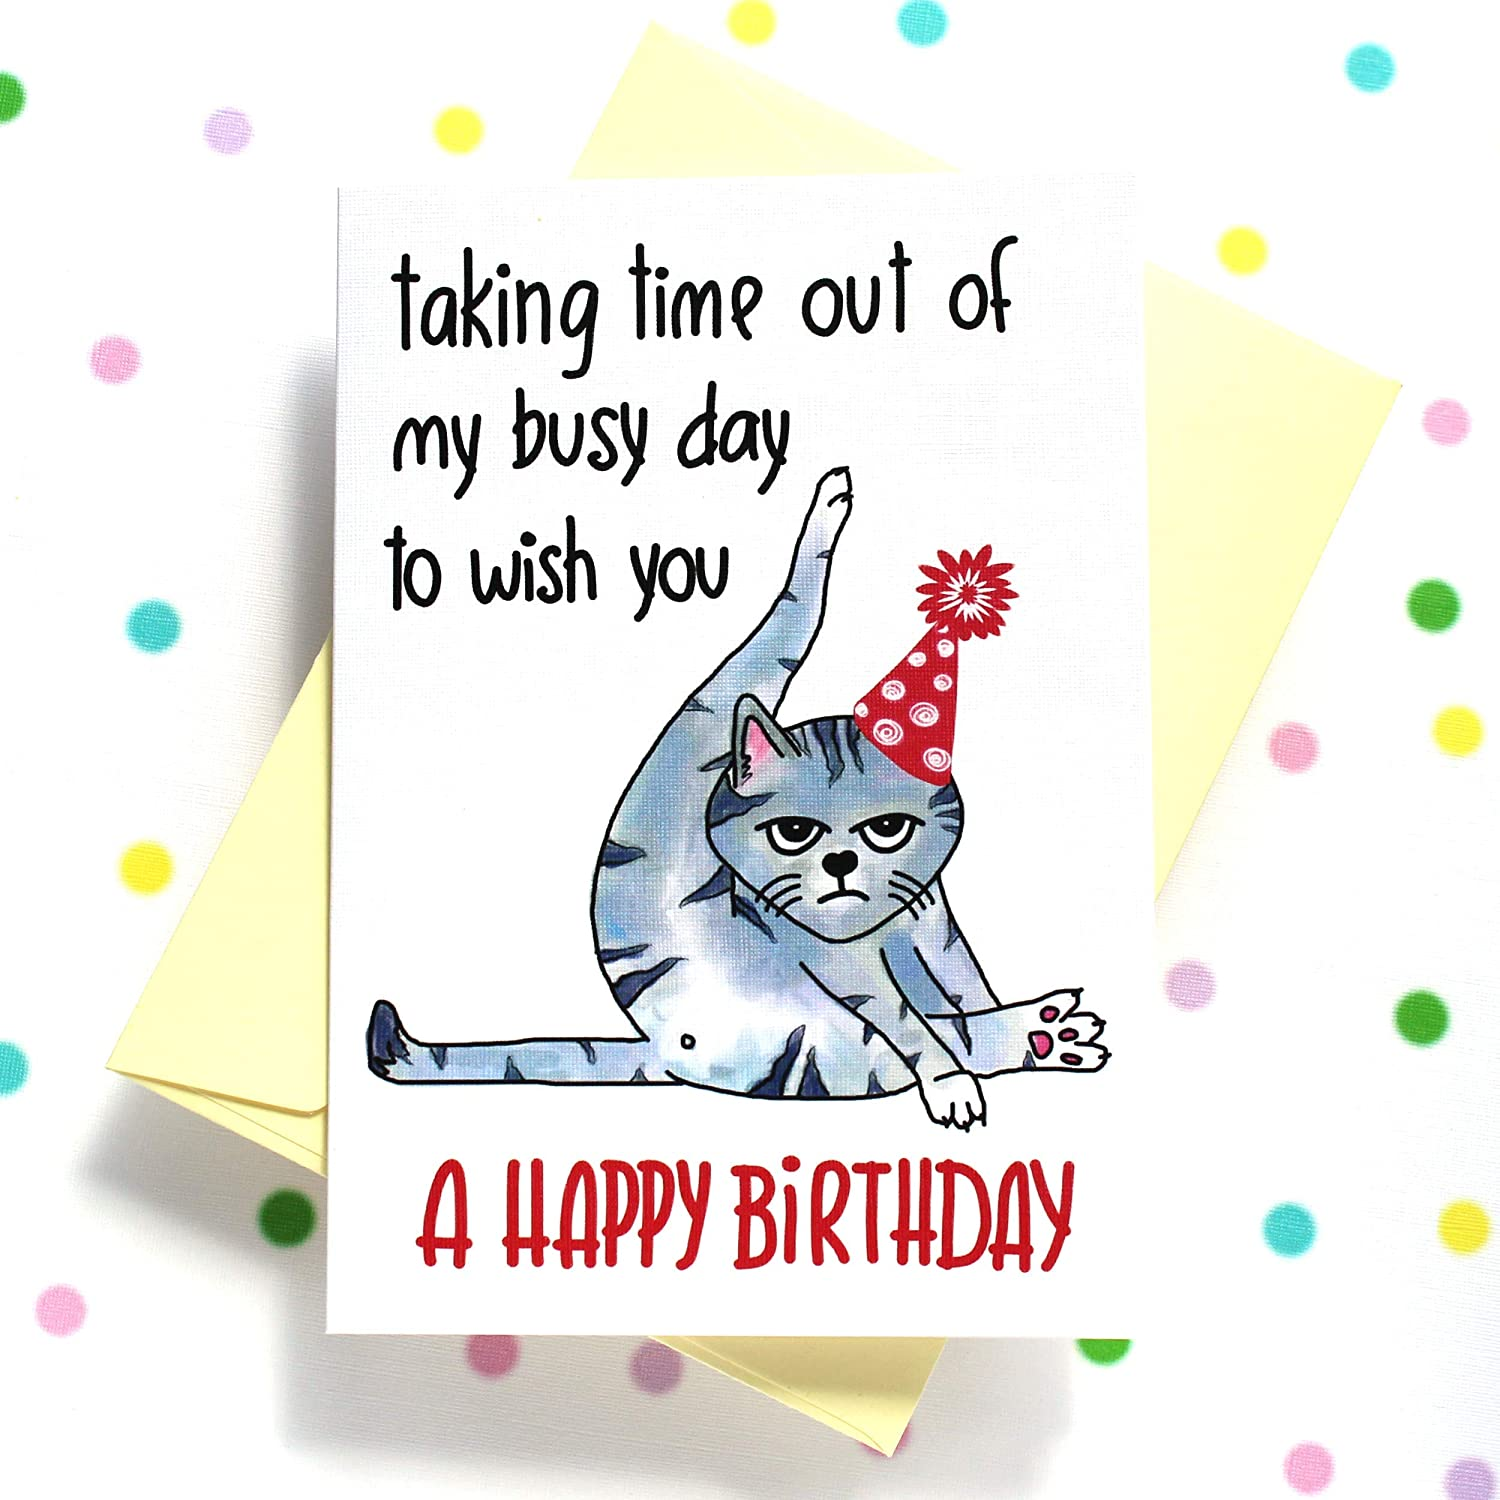 Funny Birthday Card from Cat, Humorous Grumpy Cat Birthday Card to Cat  Lover - Taking Time out of My Busy Day to Wish You a Happy Birthday Card -